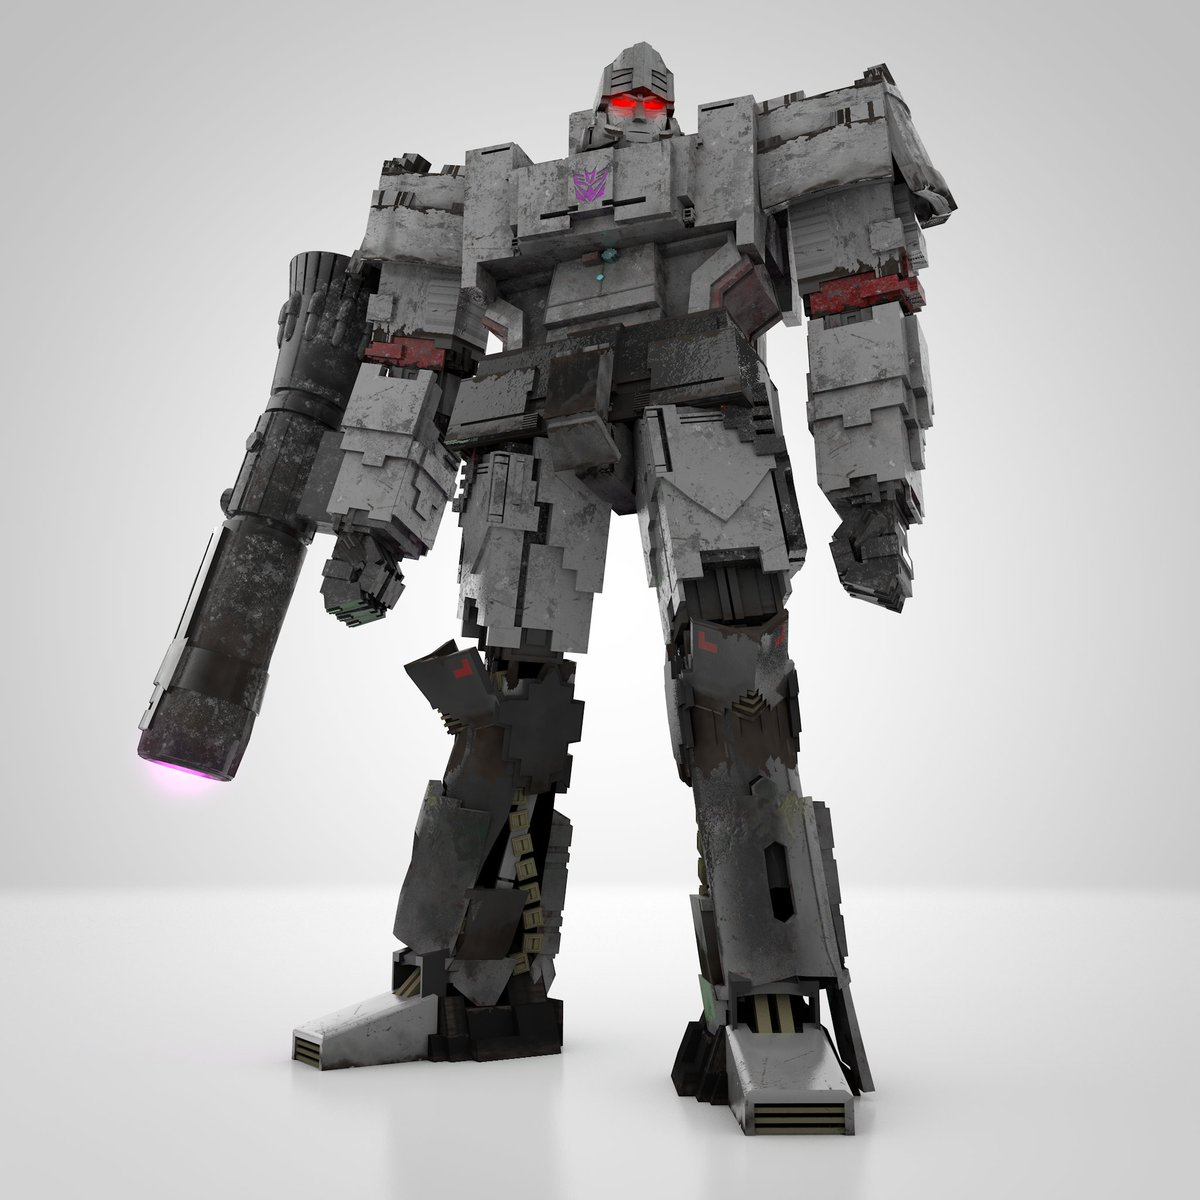 Megatron with a new canon and news G1 eyes styles  #optimusprime #transformers #autobots #bumblebeemovie #cinema4d #3dmodel #megatron #decepticons